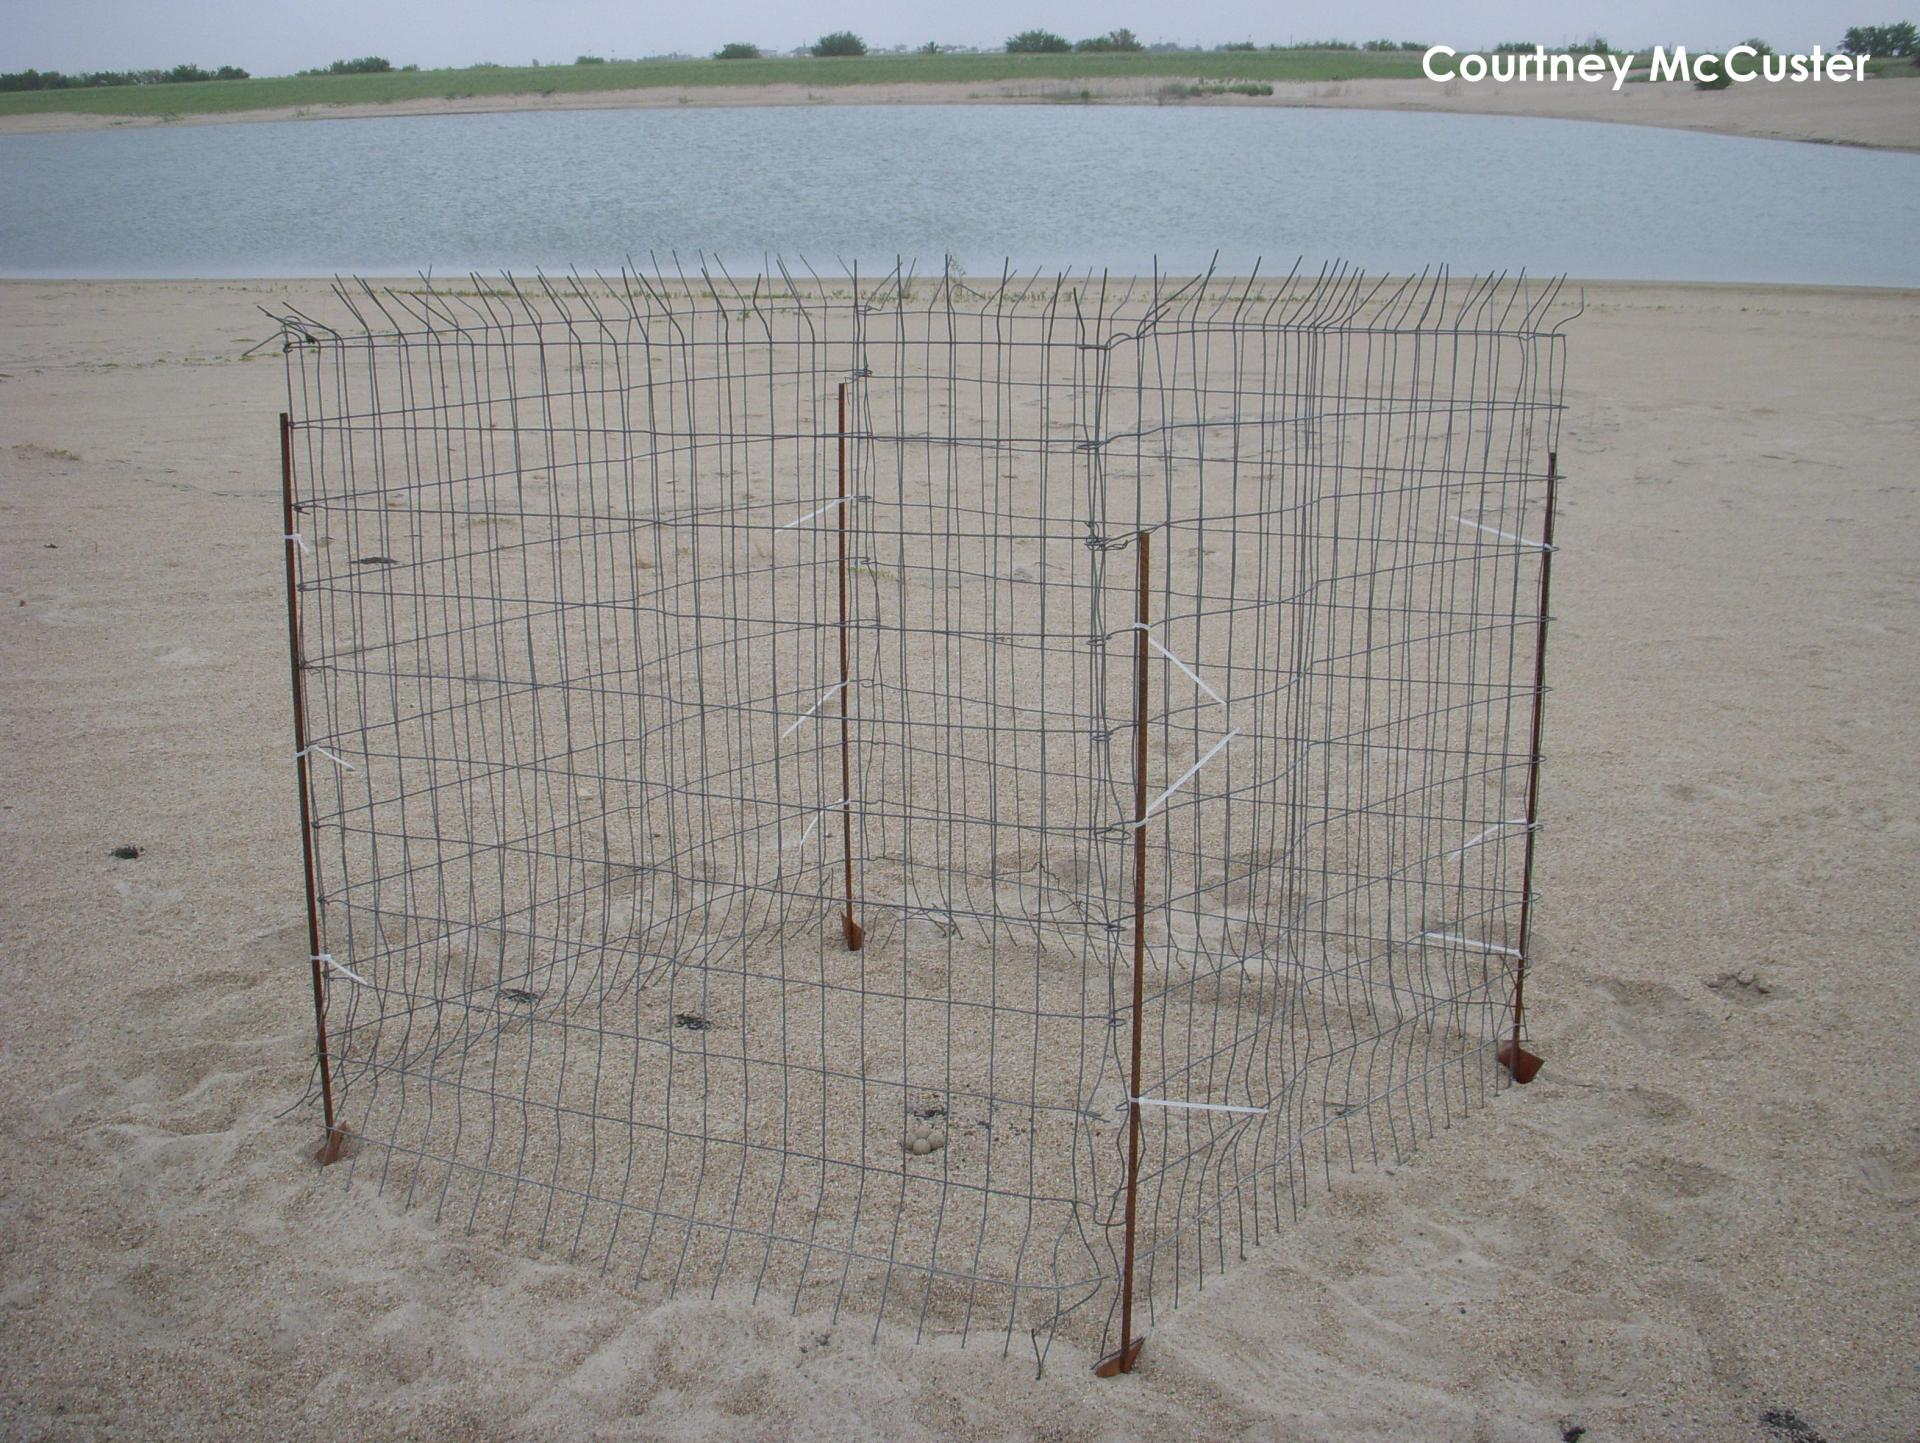 Wire exclosure around a Piping Plover nest to protect it from predators